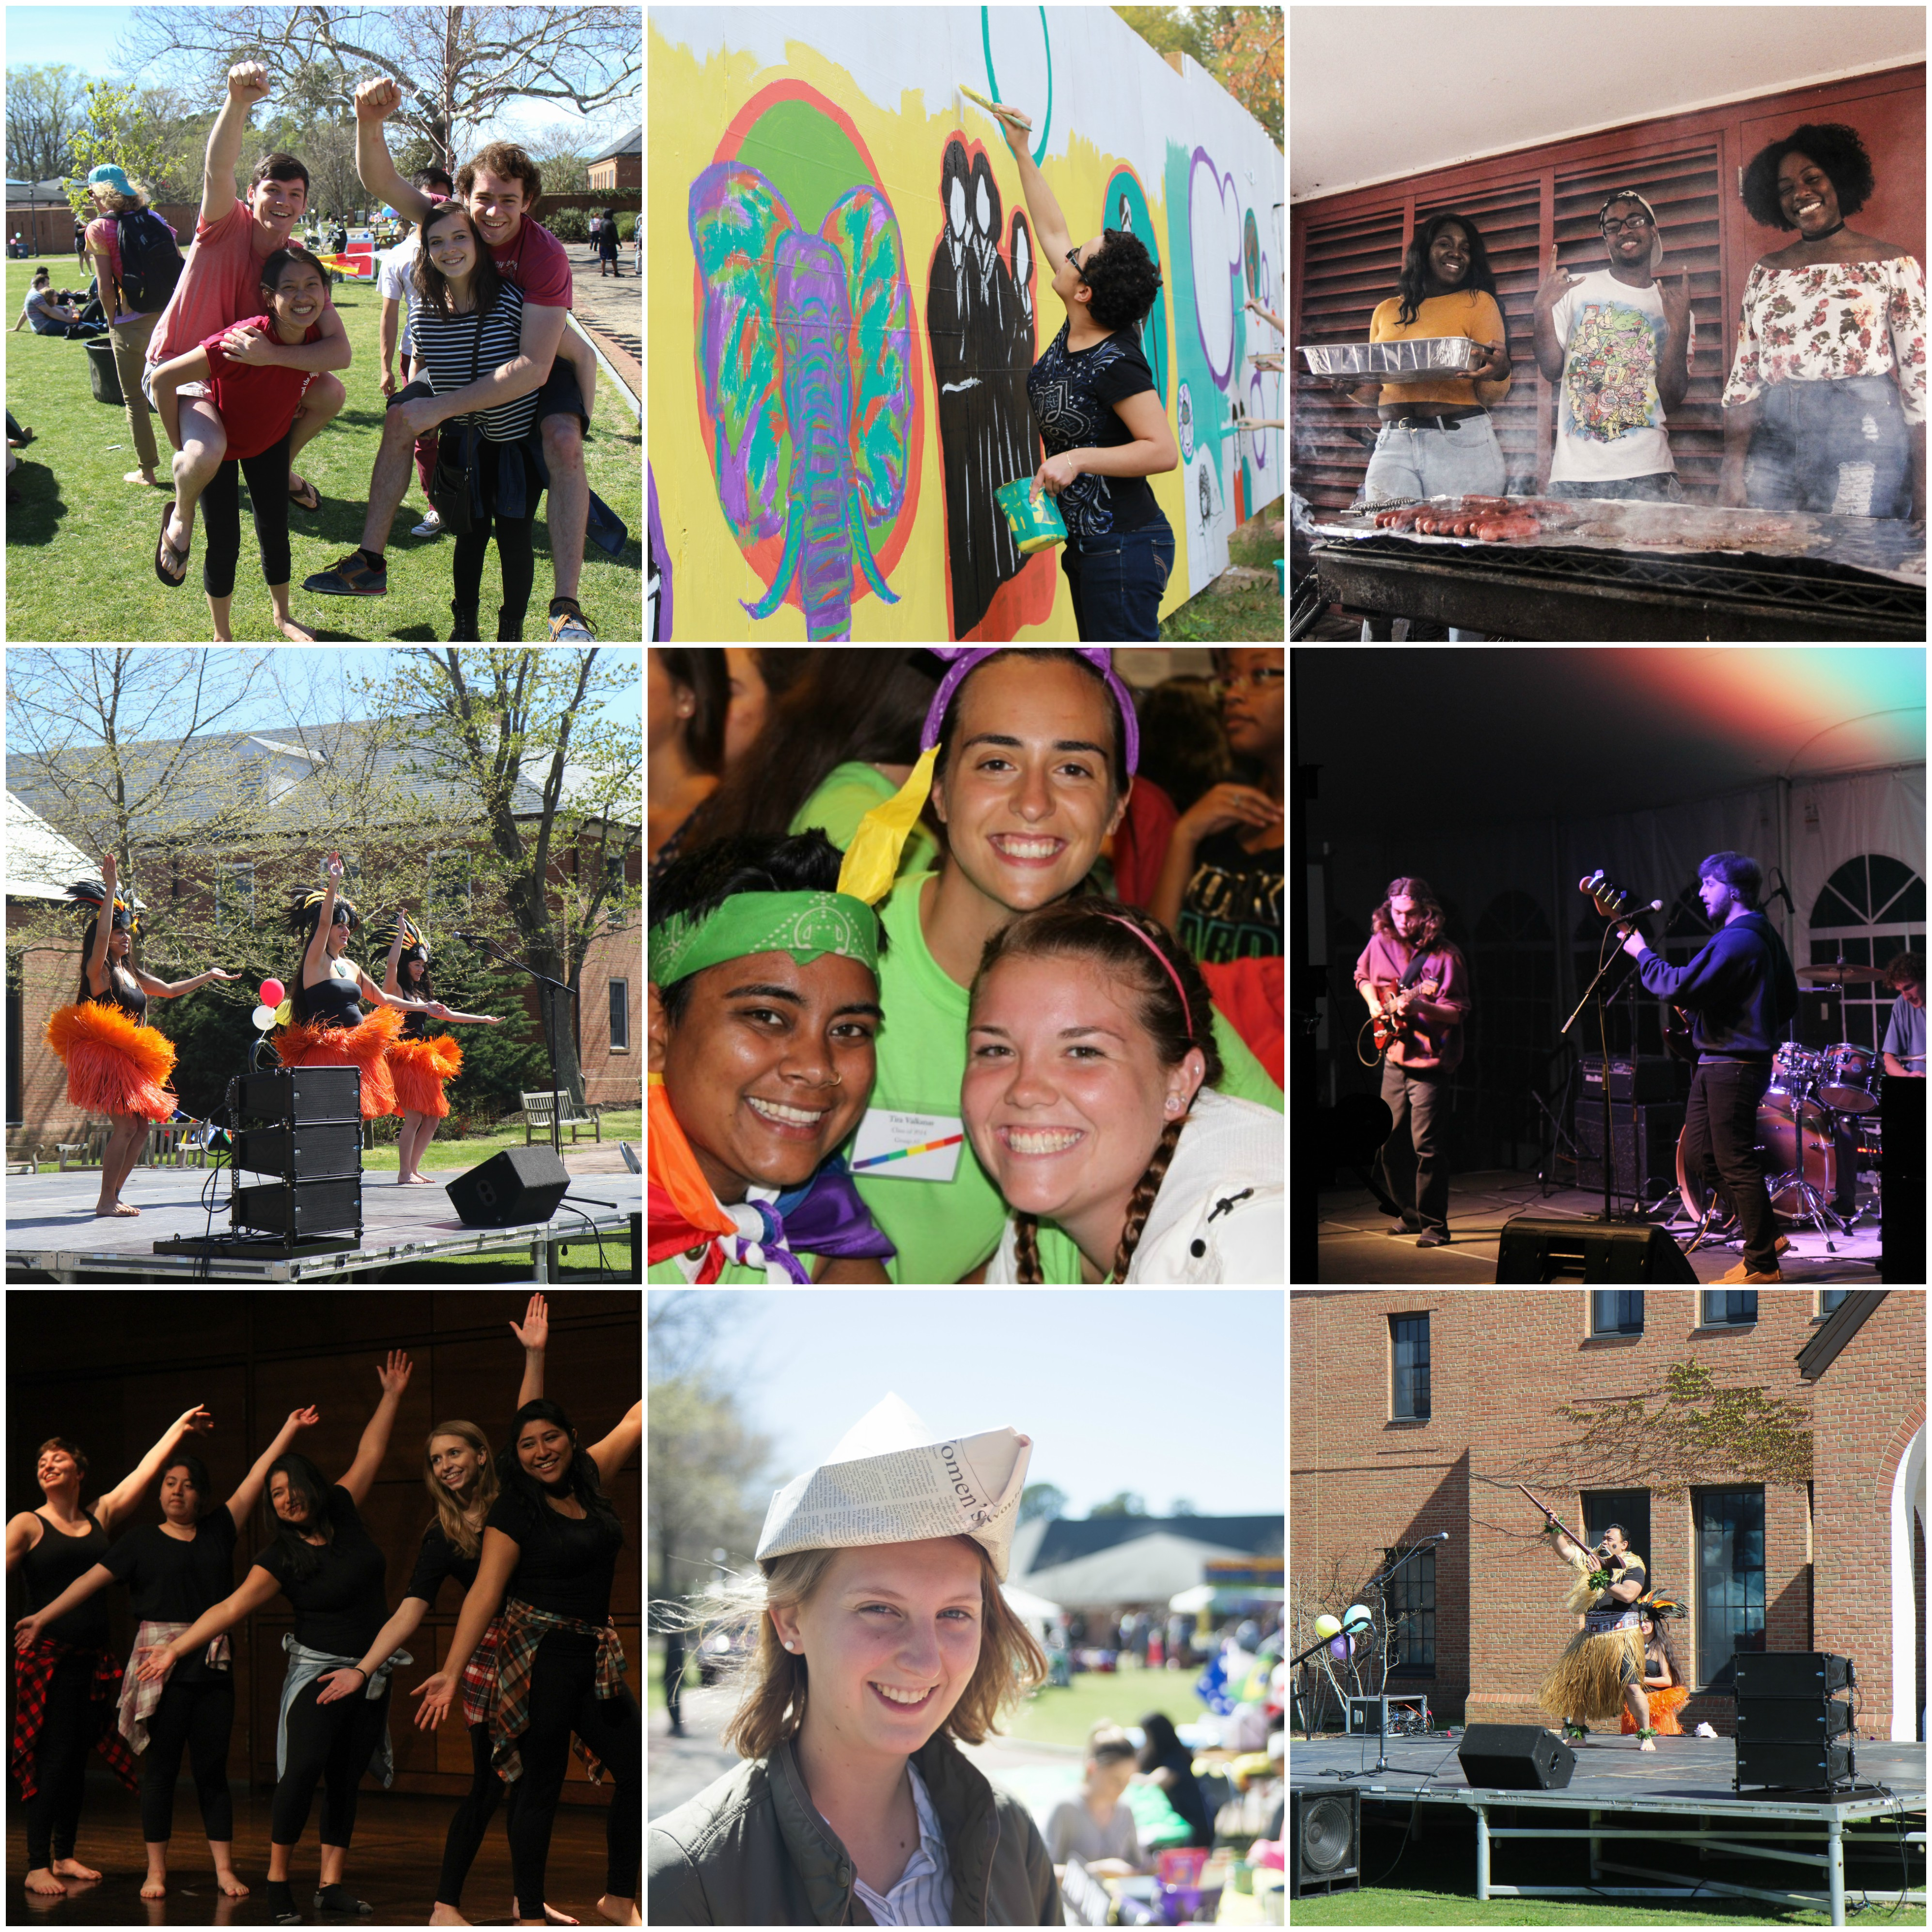 Collage of 9 square photos representing some of the multicultural clubs on campus. Images include students riding on the backs of other students, students painting on a wall, several students cooking, students dancing, students smiling, students playing instruments, students abroad, and students performing in a play.